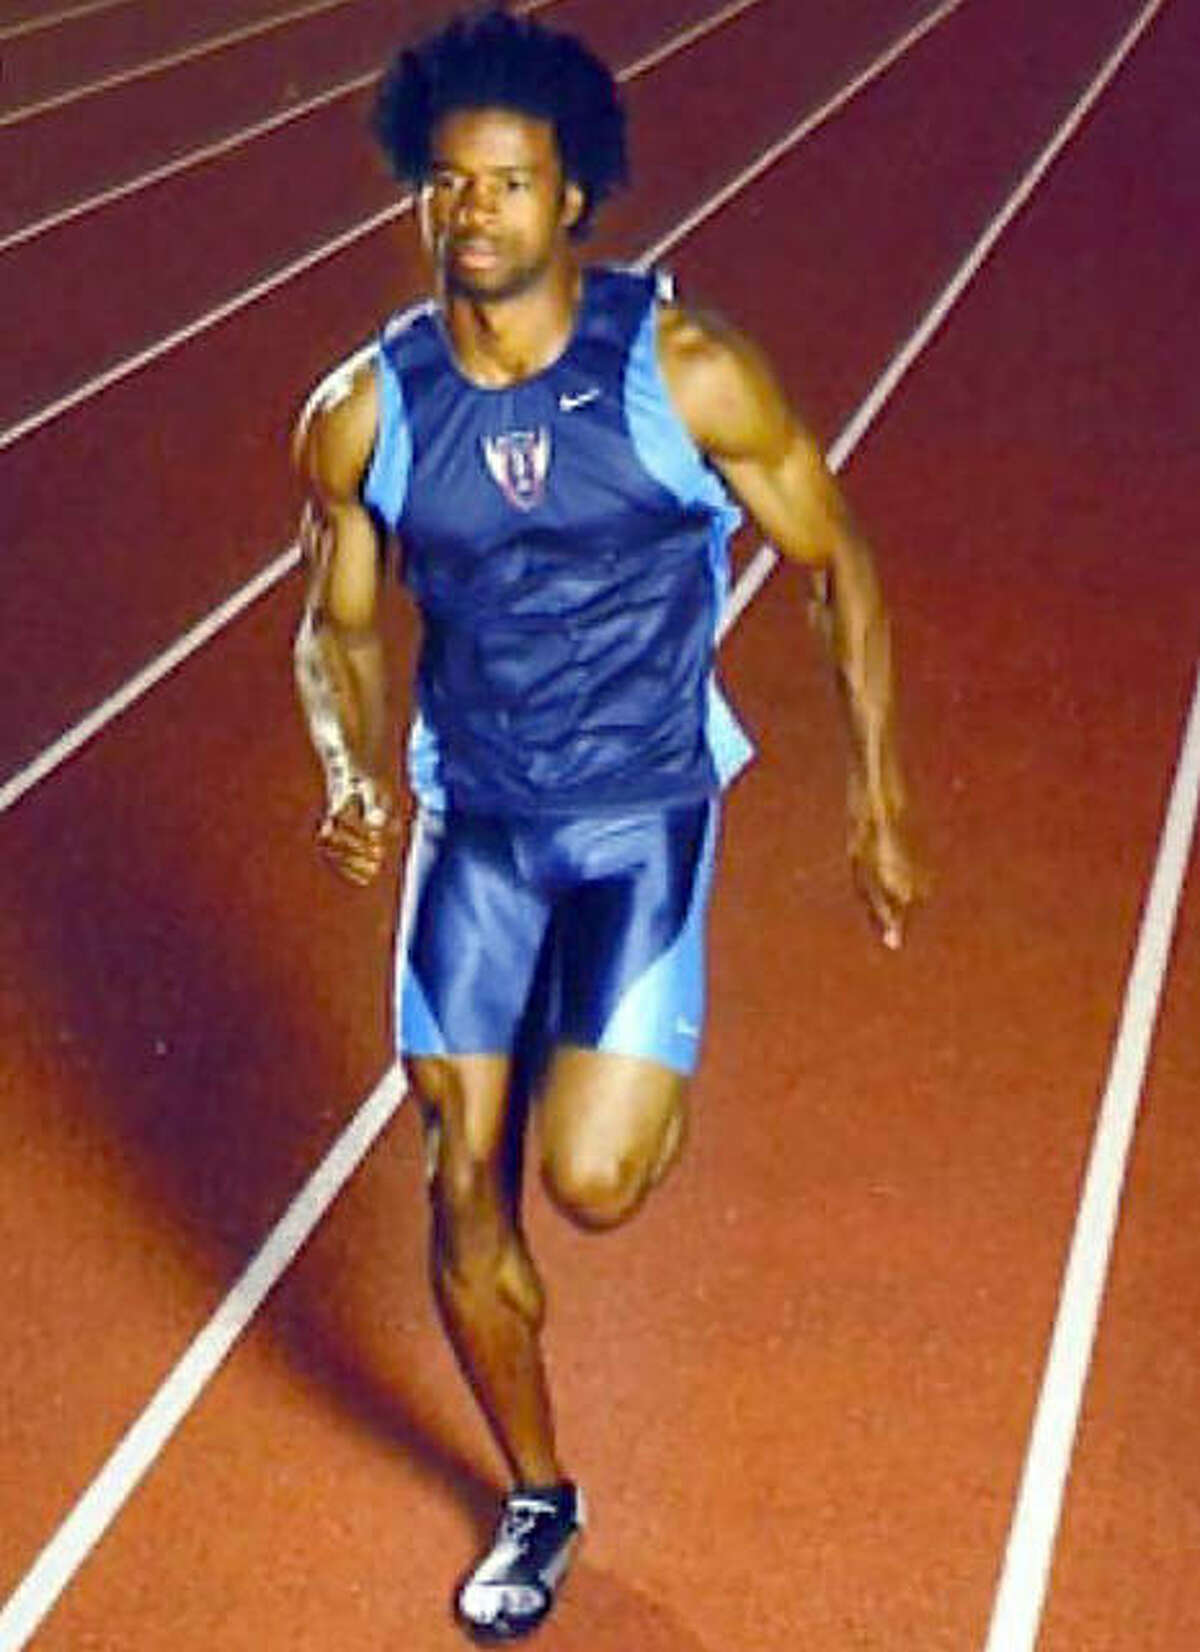 Babatunde Ridley, the superstar of the 1996 IHSA boys track championship won by Carlinville High School, is shown in his later athletic career. Ridley captured four individual state titles in 1996, accounting for 40 of Carlinville's 46 team points.